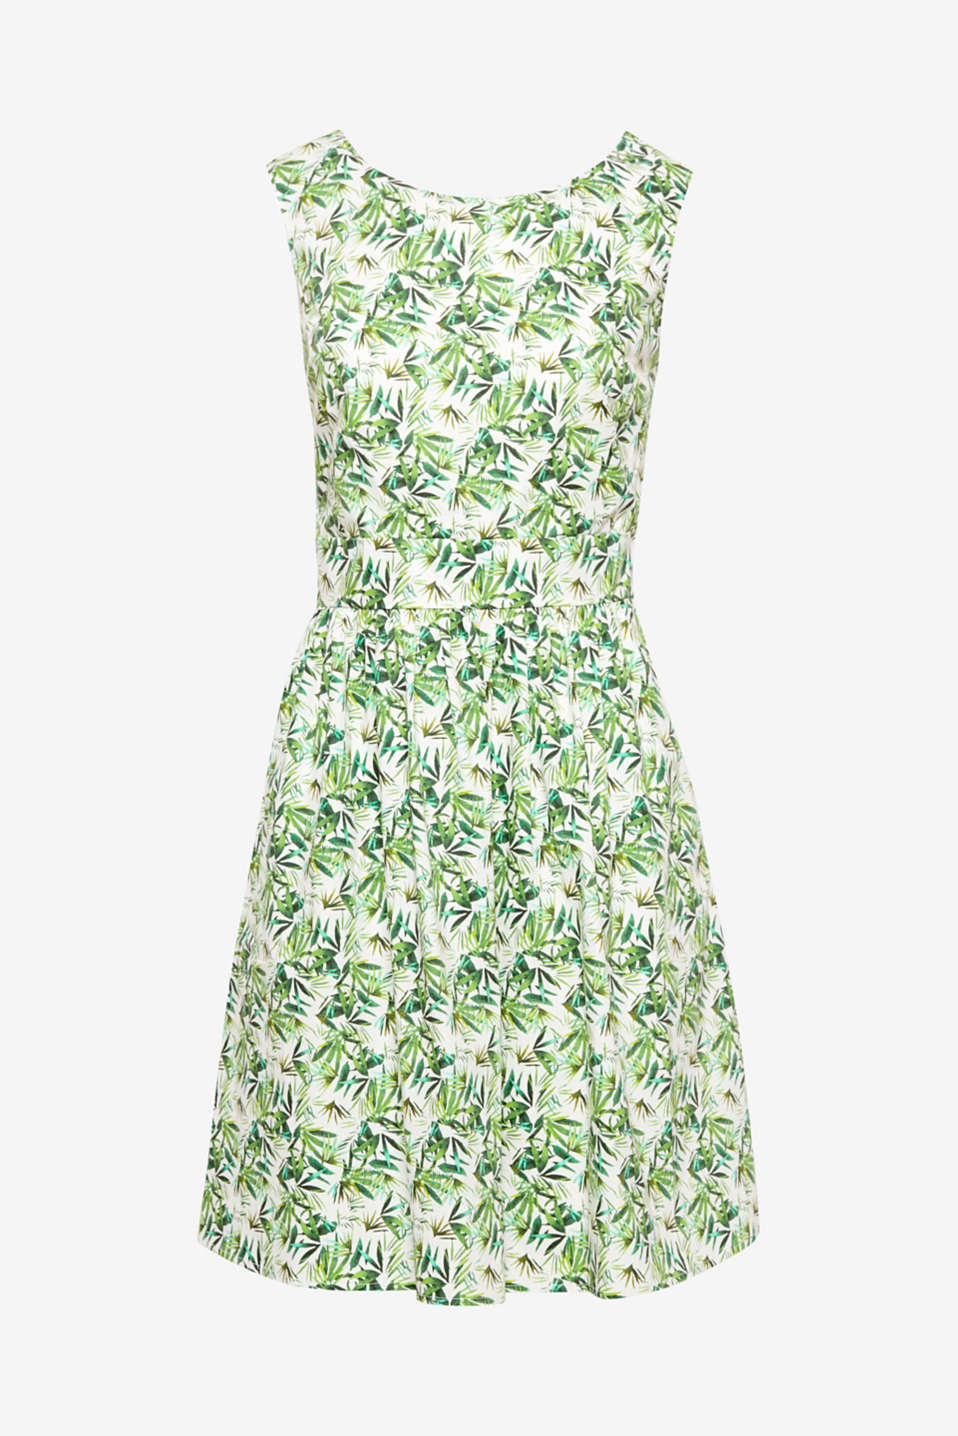 Feel the Fifties... or simply enjoy the summer in this lightweight cotton dress with its lavish palm tree print and retro charm!